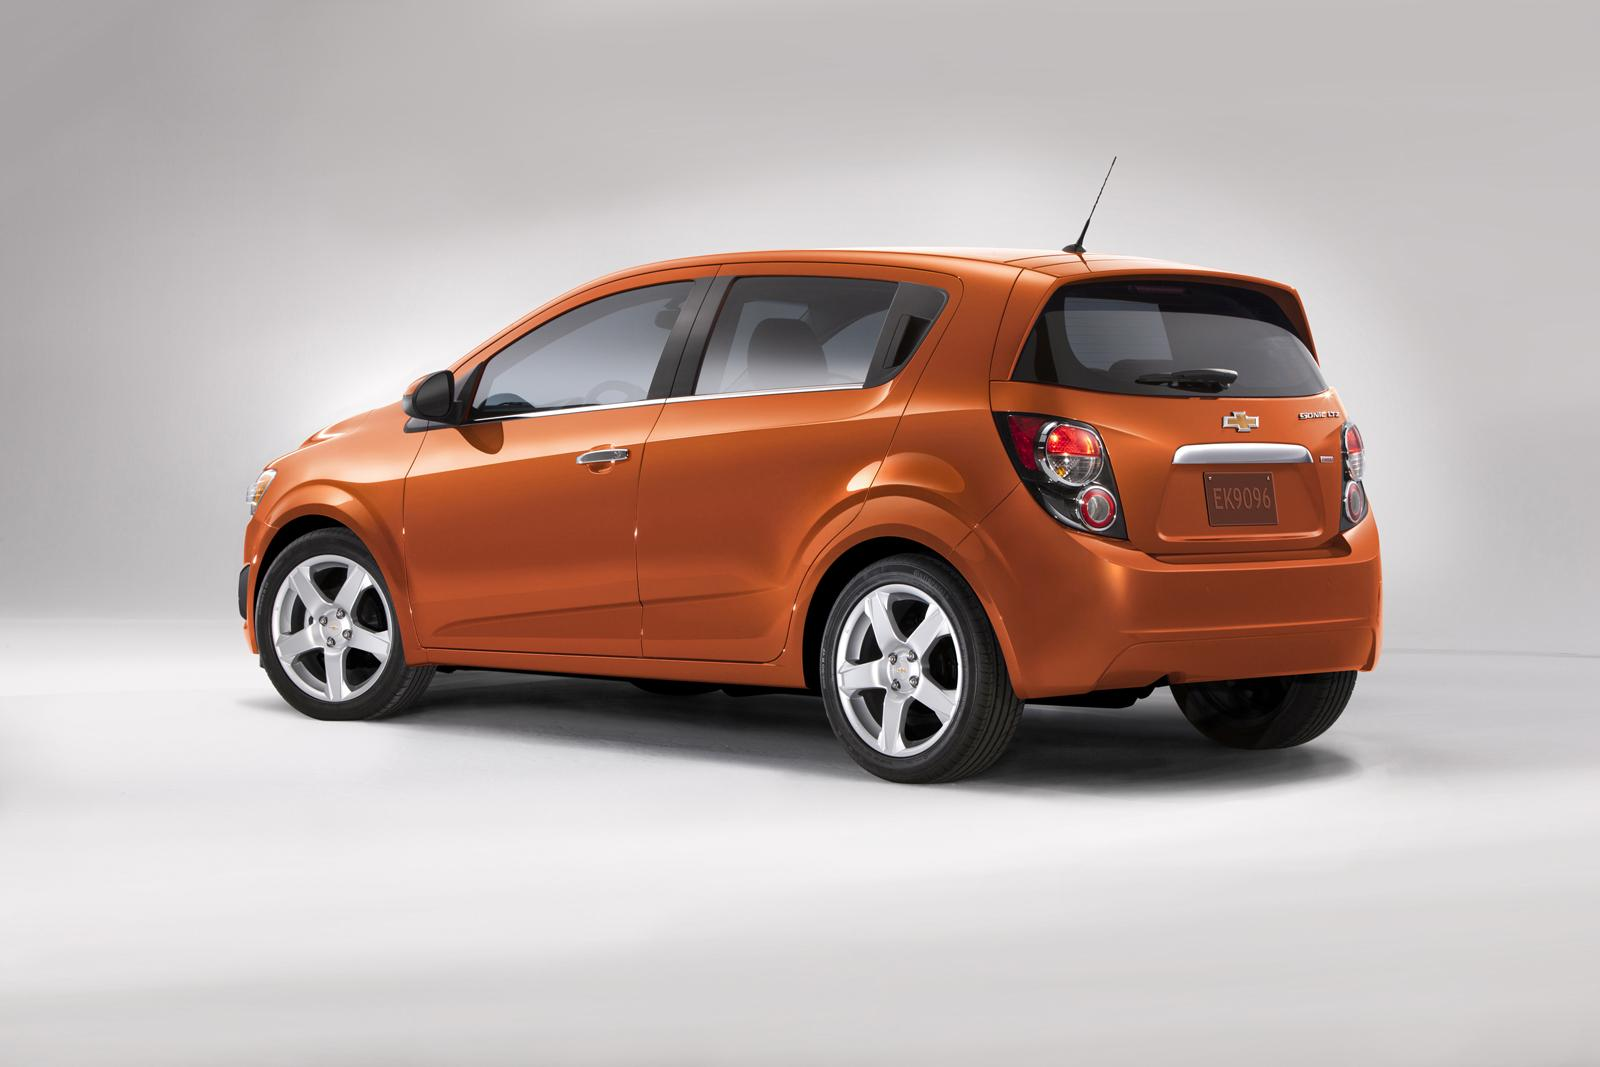 Chevrolet Sonic Repair Manual: Control Valve Body Assembly Removal